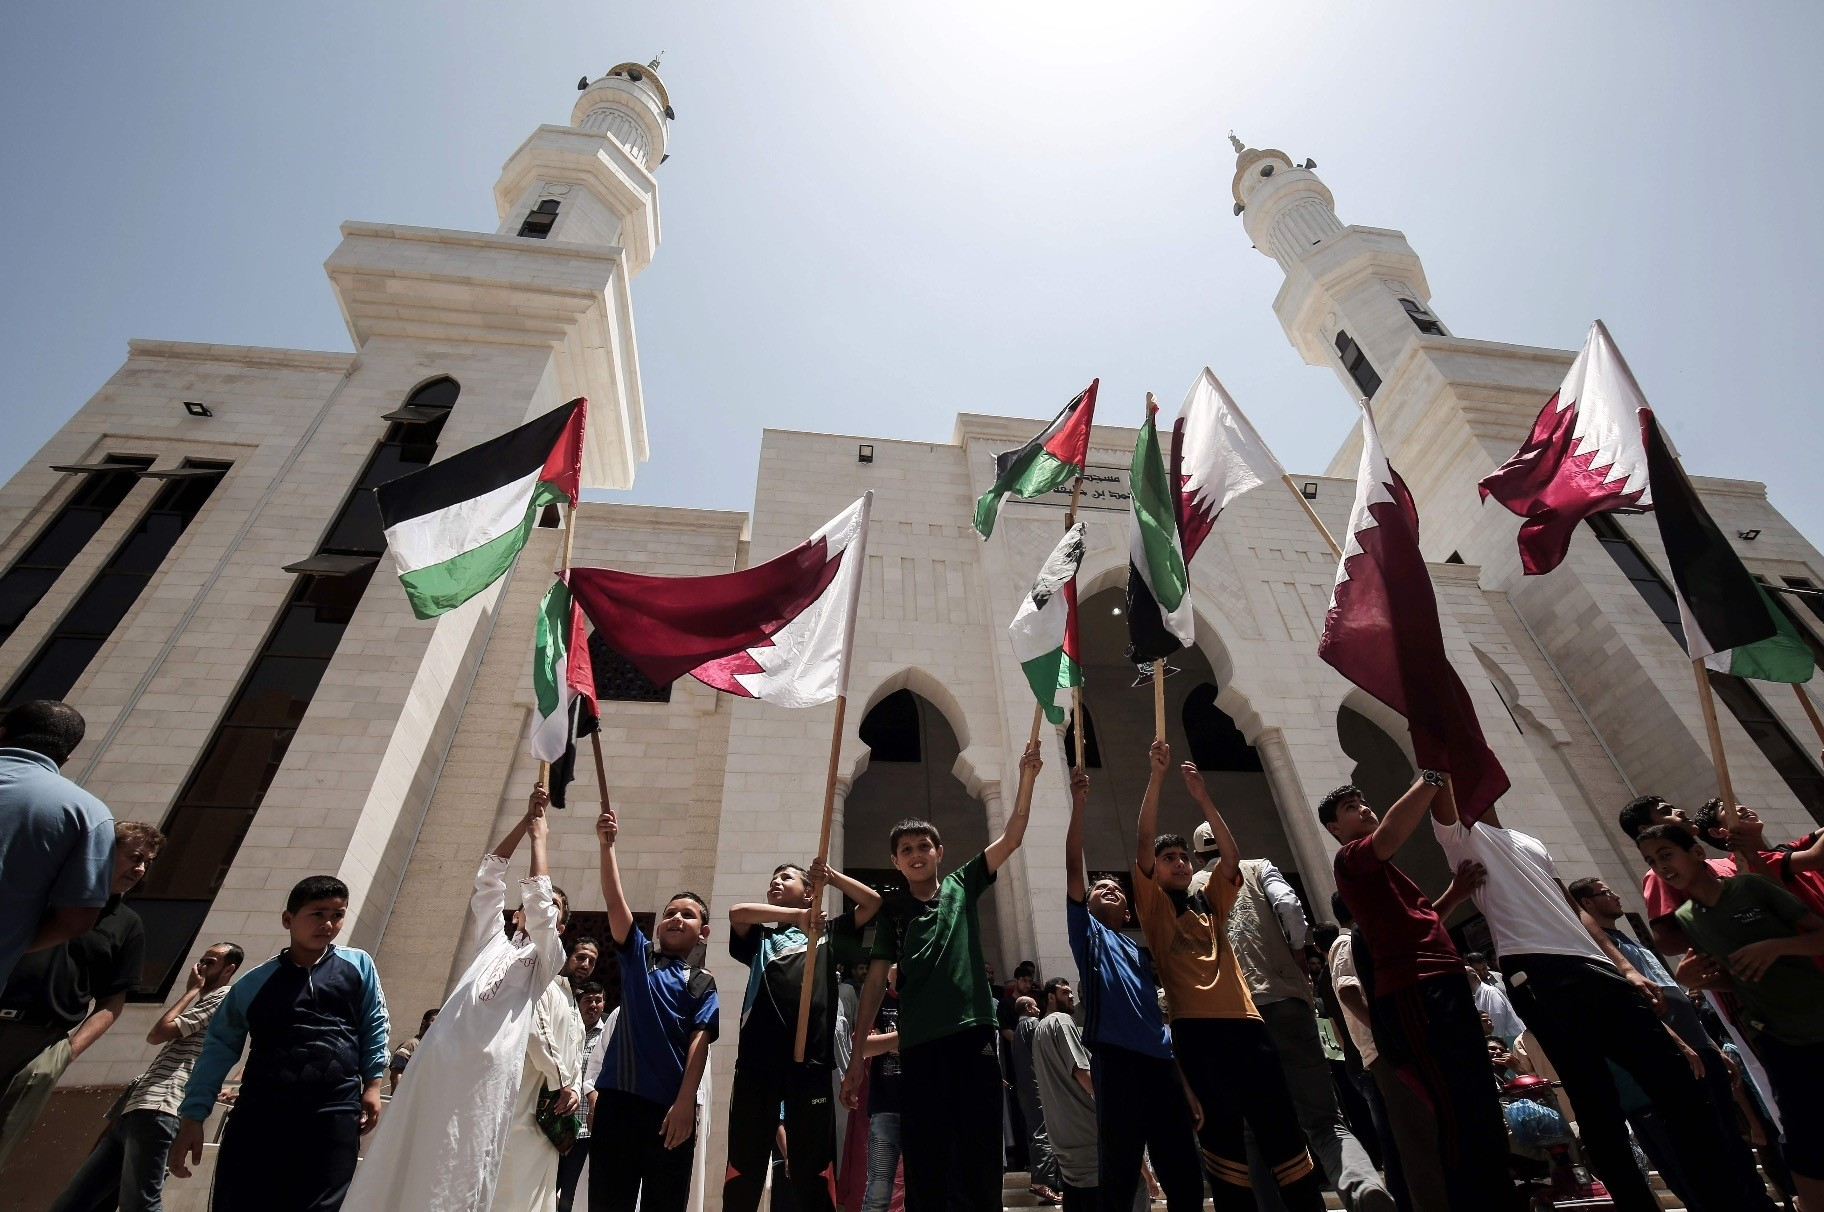 Palestinians attending a rally in support of Qatar after the blockade by the Gulf countries, led by Saudi Arabia and the UAE, were implemented against it, at the Qatari-funded housing project in the southern Gaza Strip city of Khan Yunis on June 9.